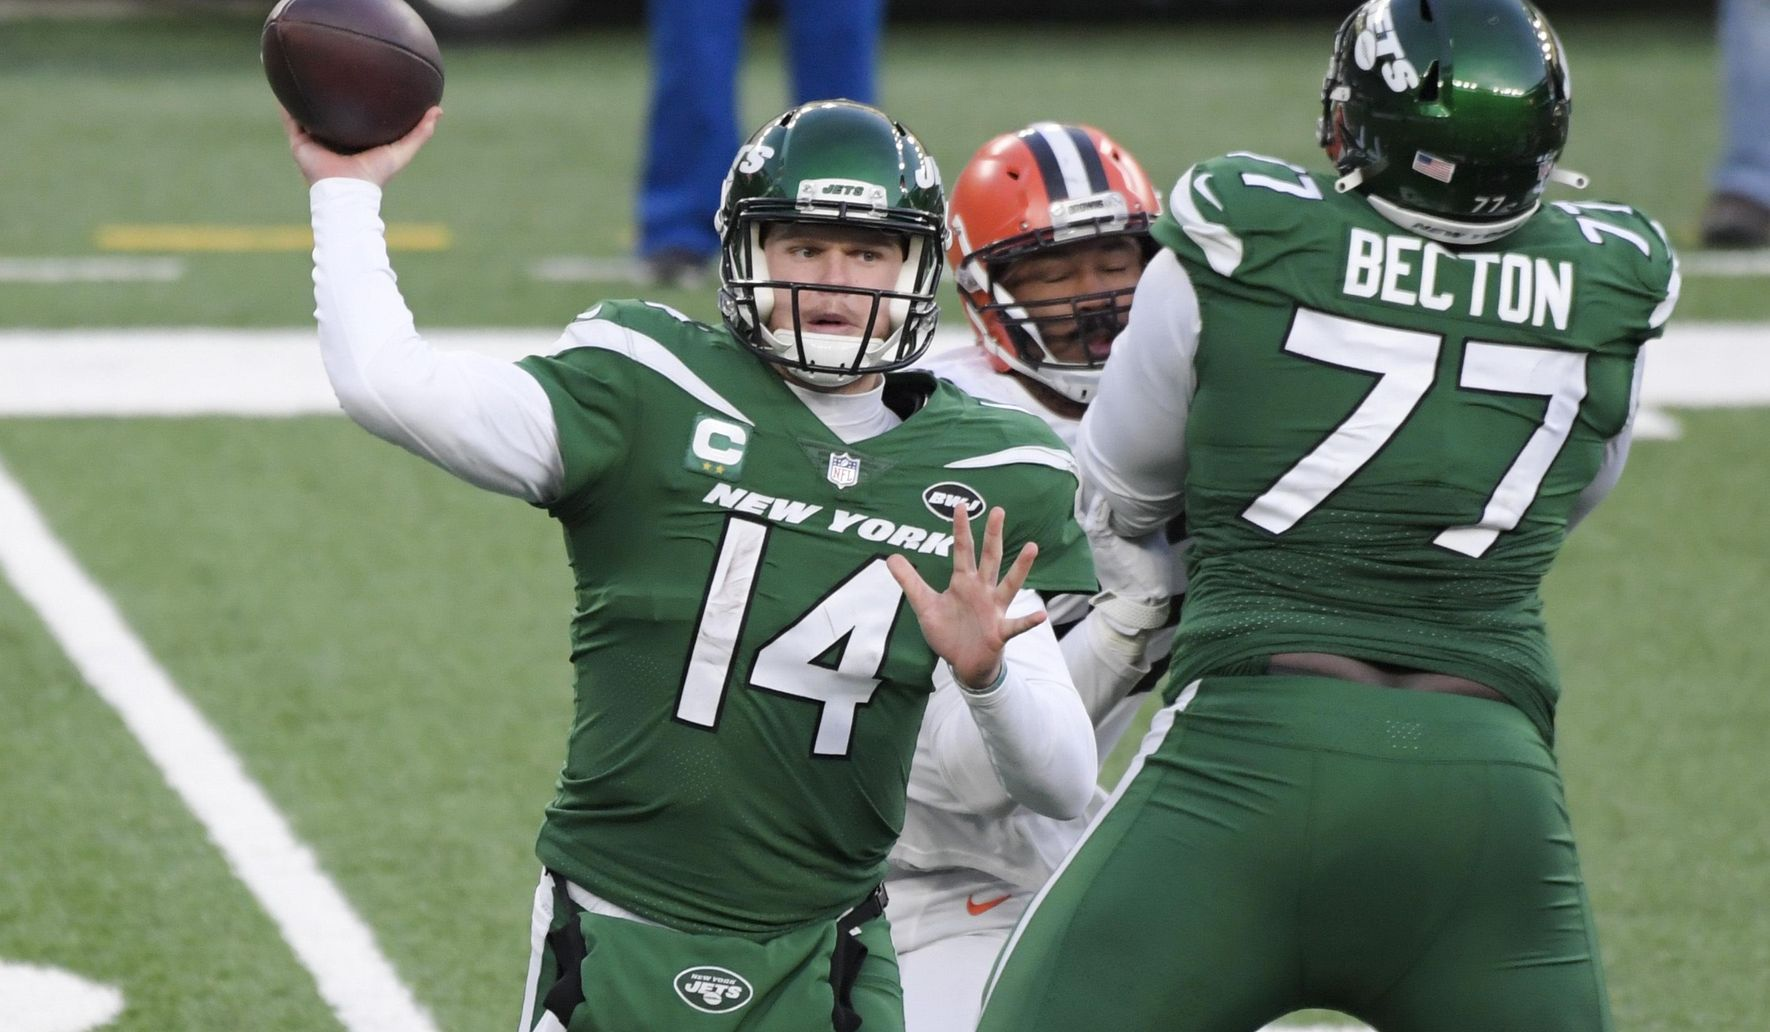 Browns_jets_football_43803_c0-118-2823-1763_s1770x1032